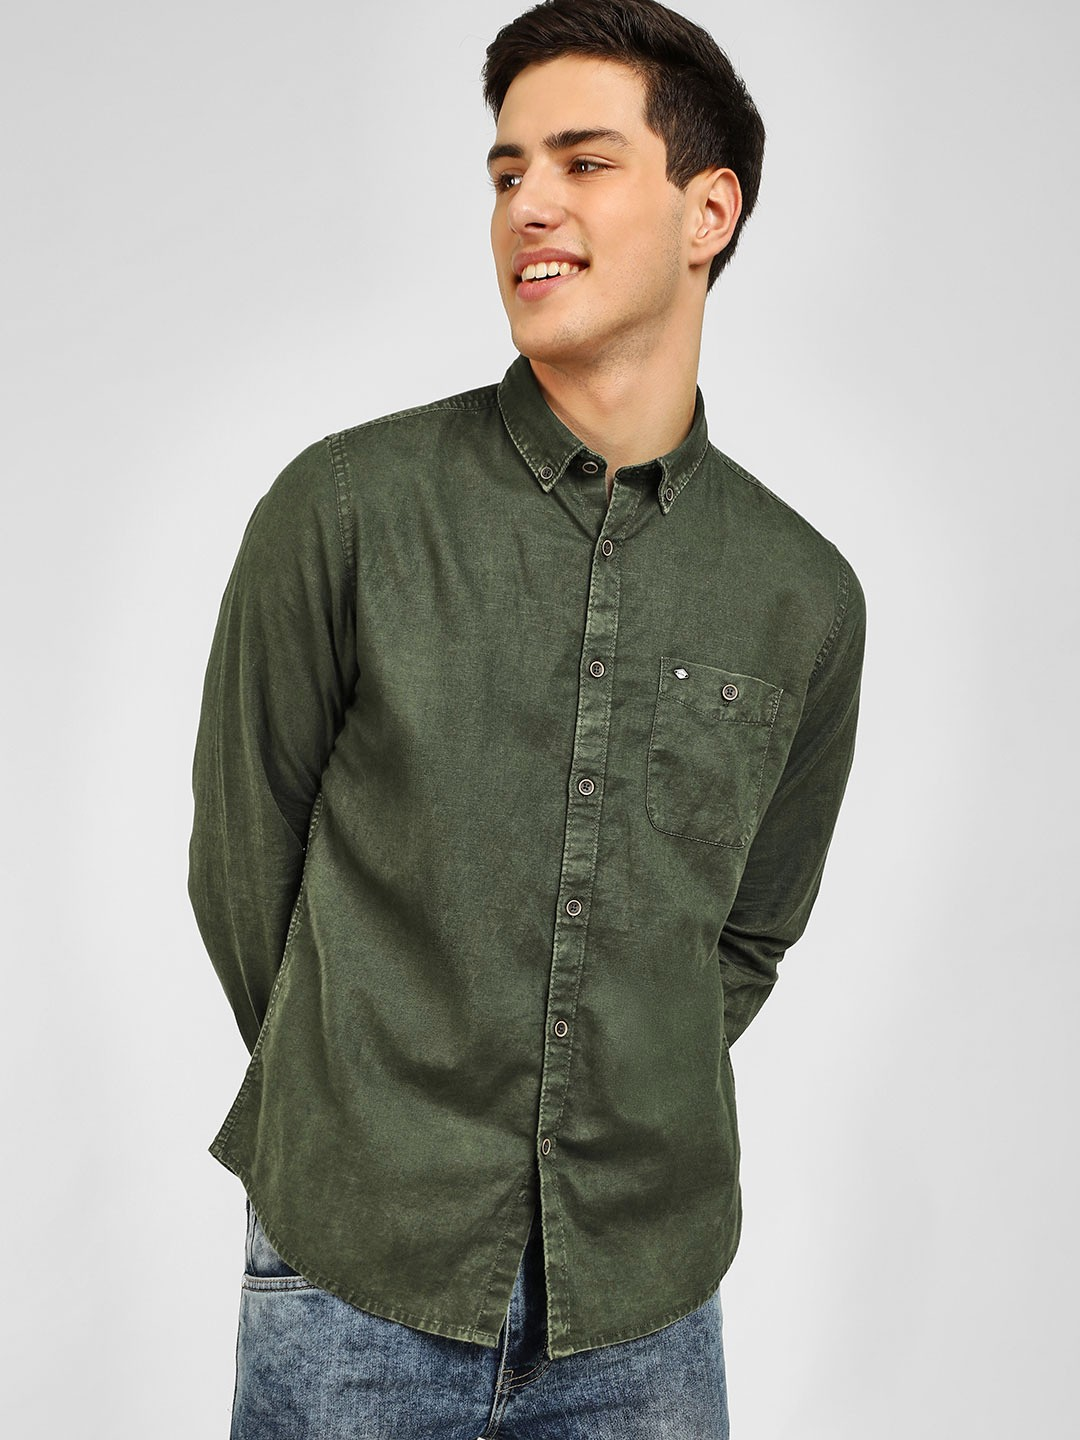 Lee Cooper Green Overdyed Long Sleeves Shirt 1